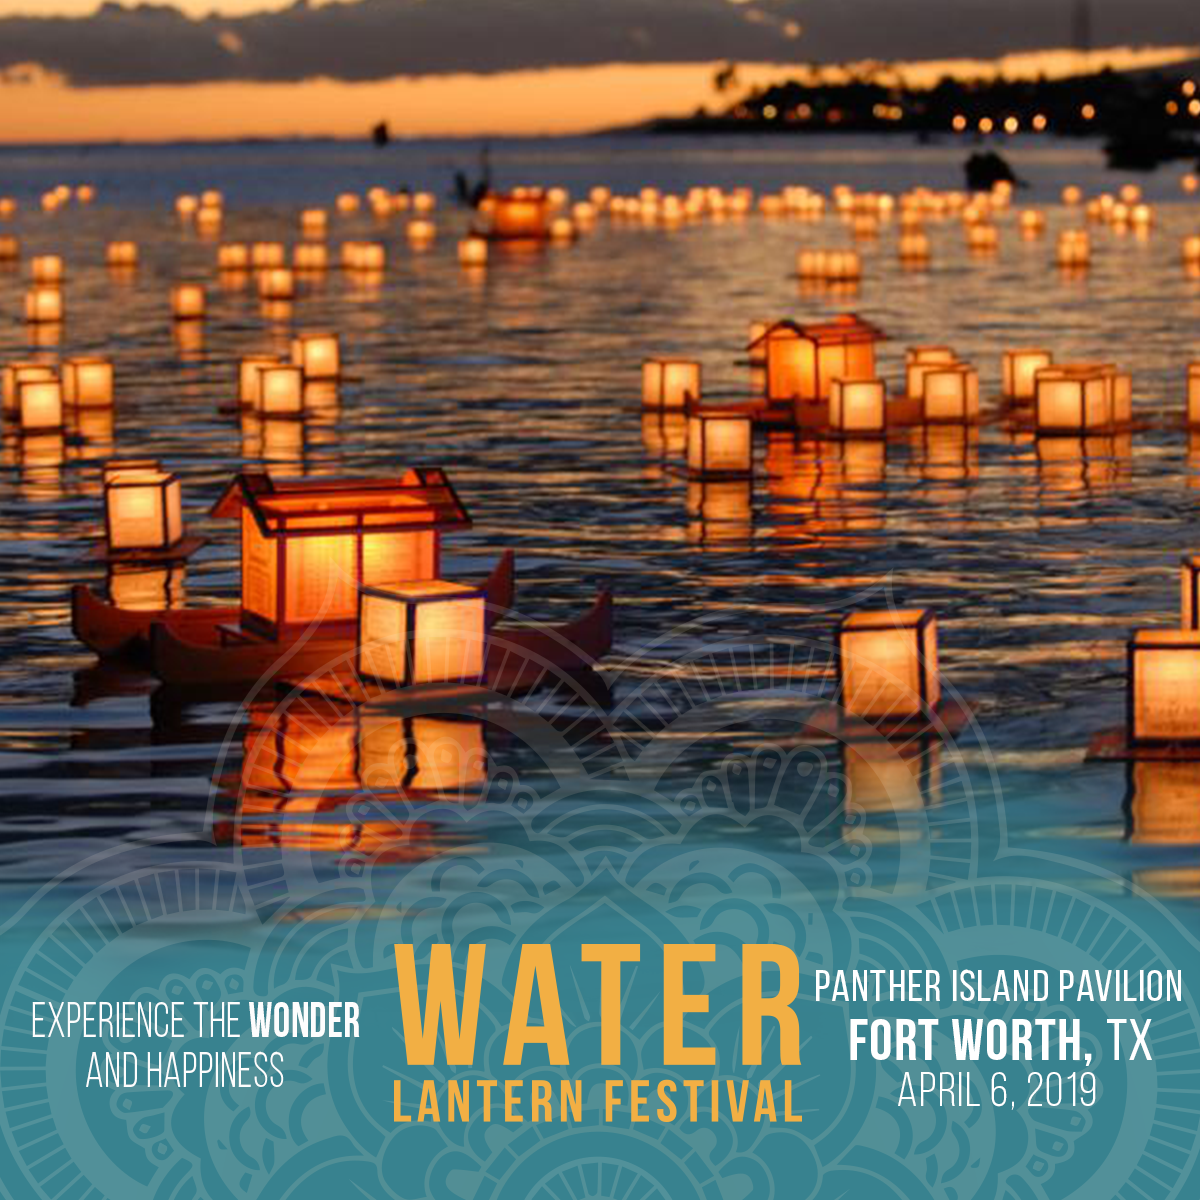 Water Lantern Festival | Fort Worth 2019 - April 6, 2019 | VAVV participated as a Vendor with a Booth at the Water Lantern Festival in Fort Worth